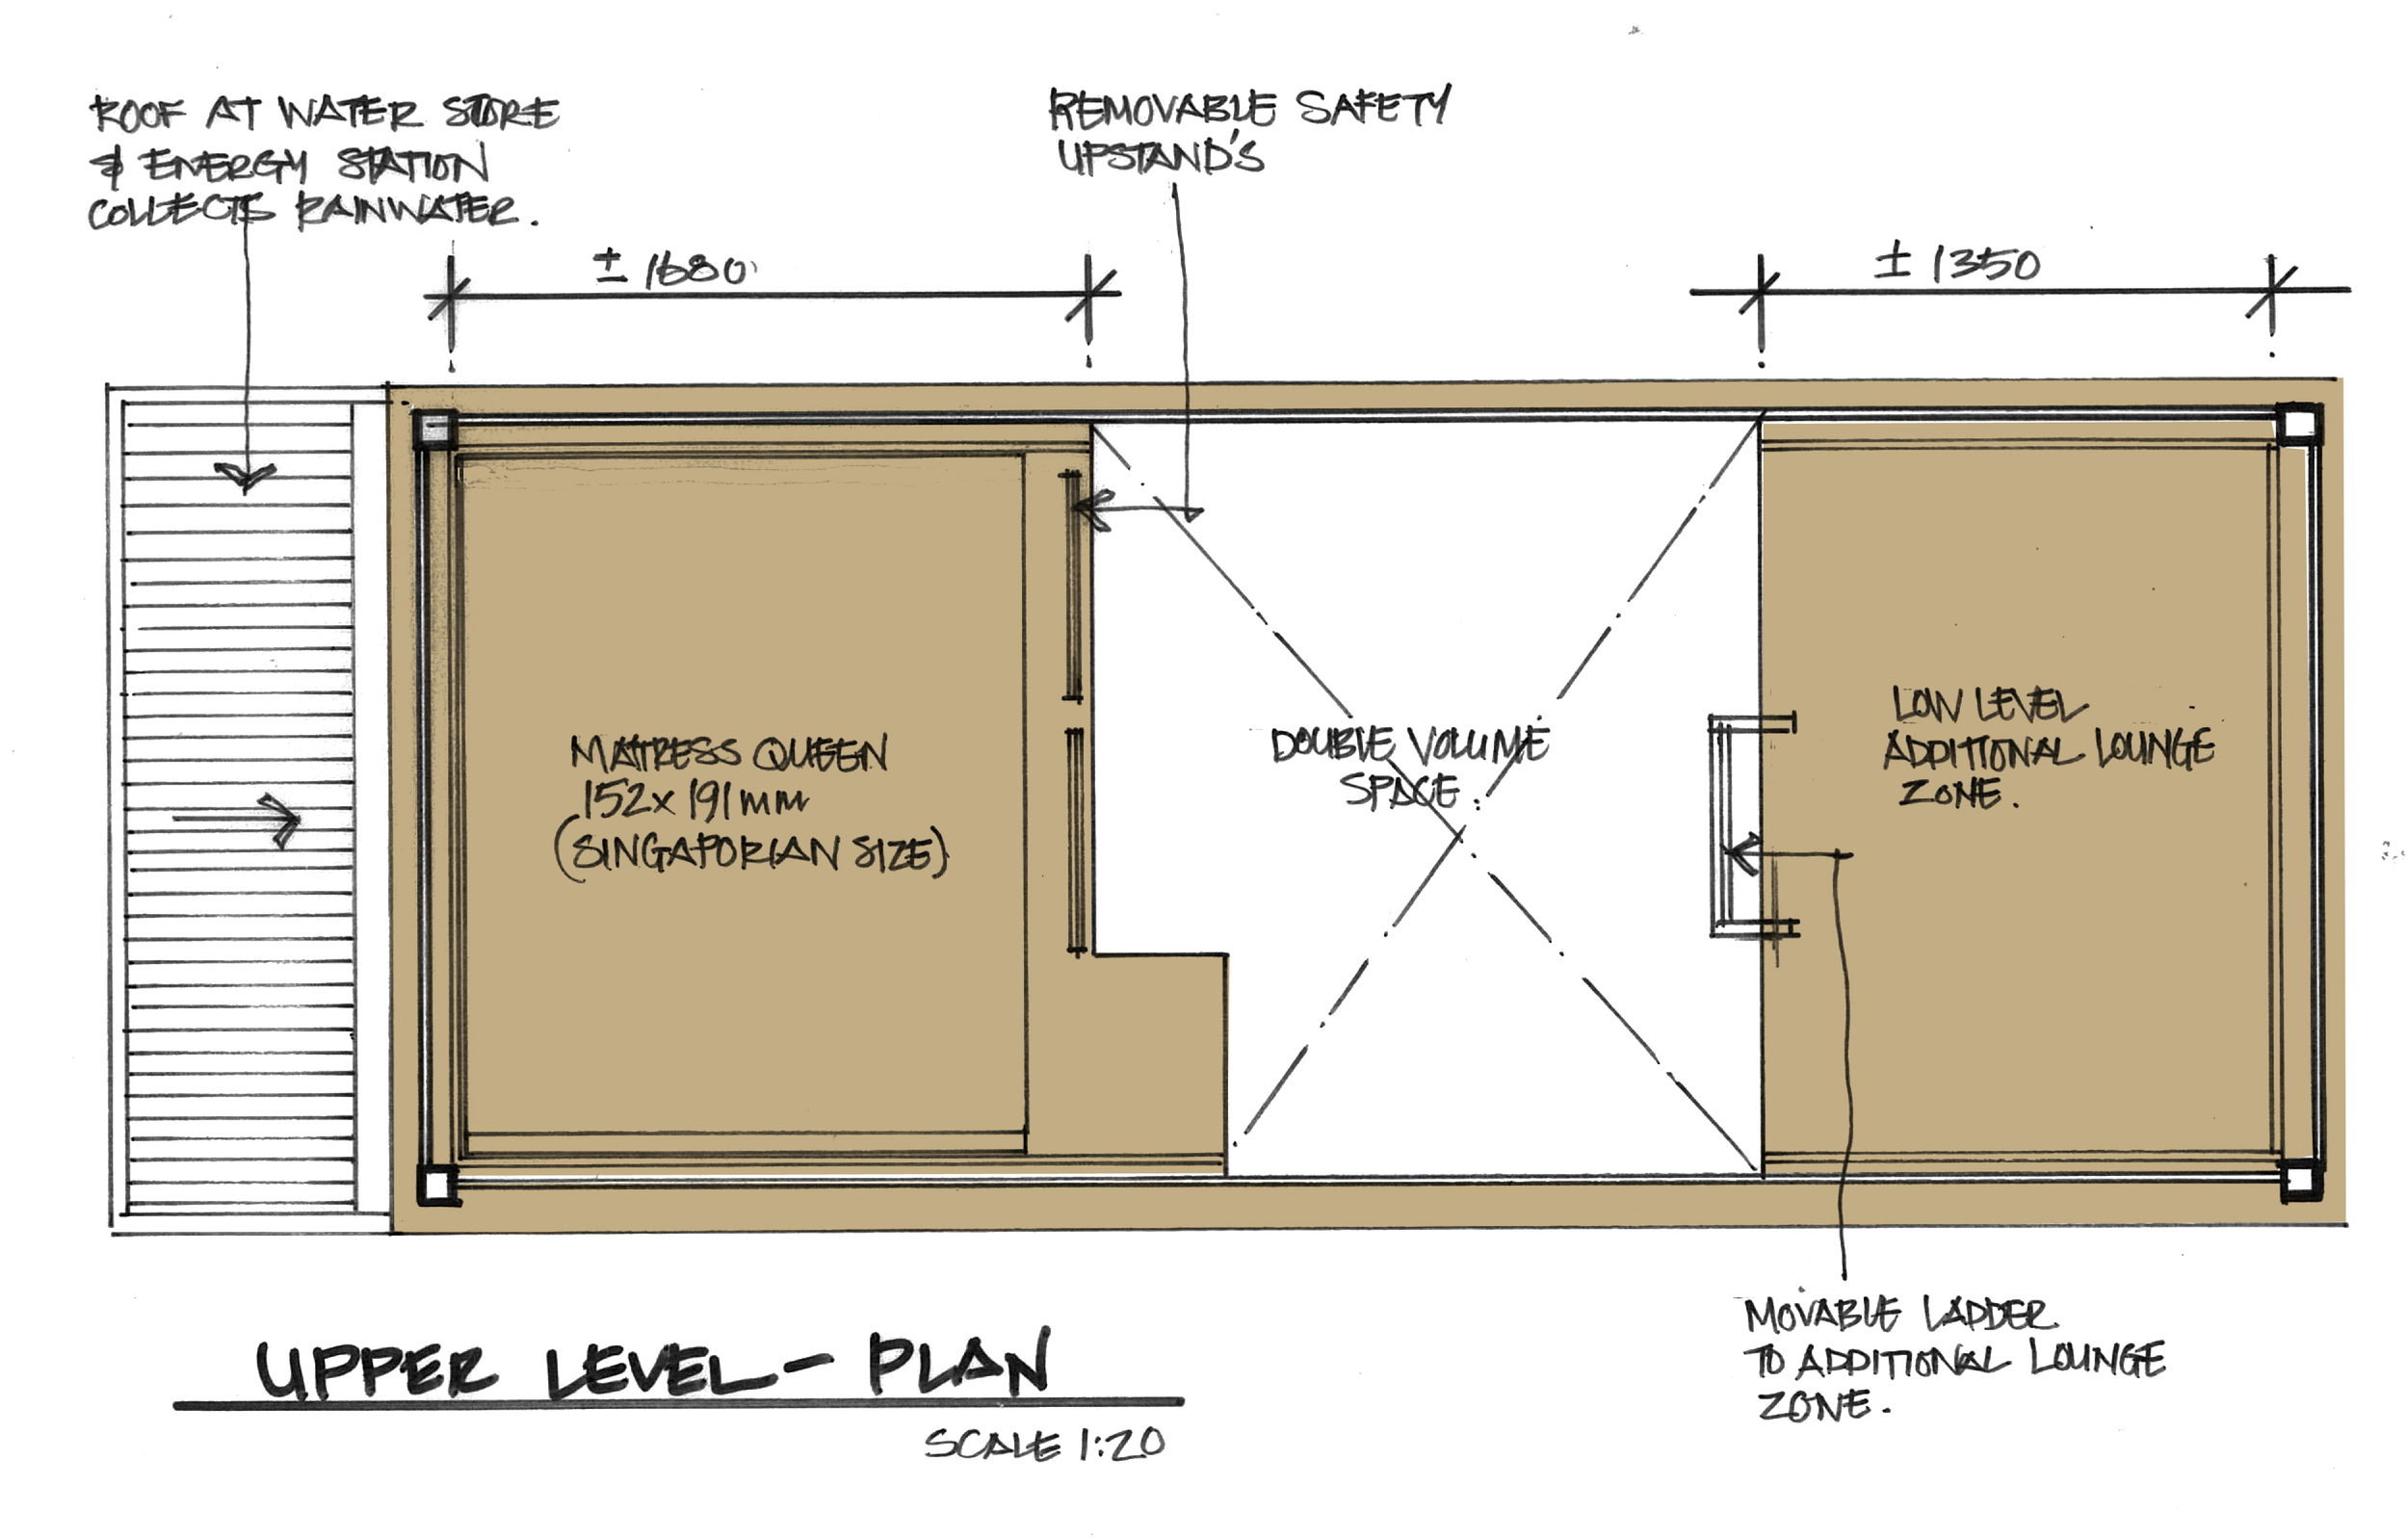 SKETCH PLAN MEZZANINE SLEEPING AND LOUNGE SPACE